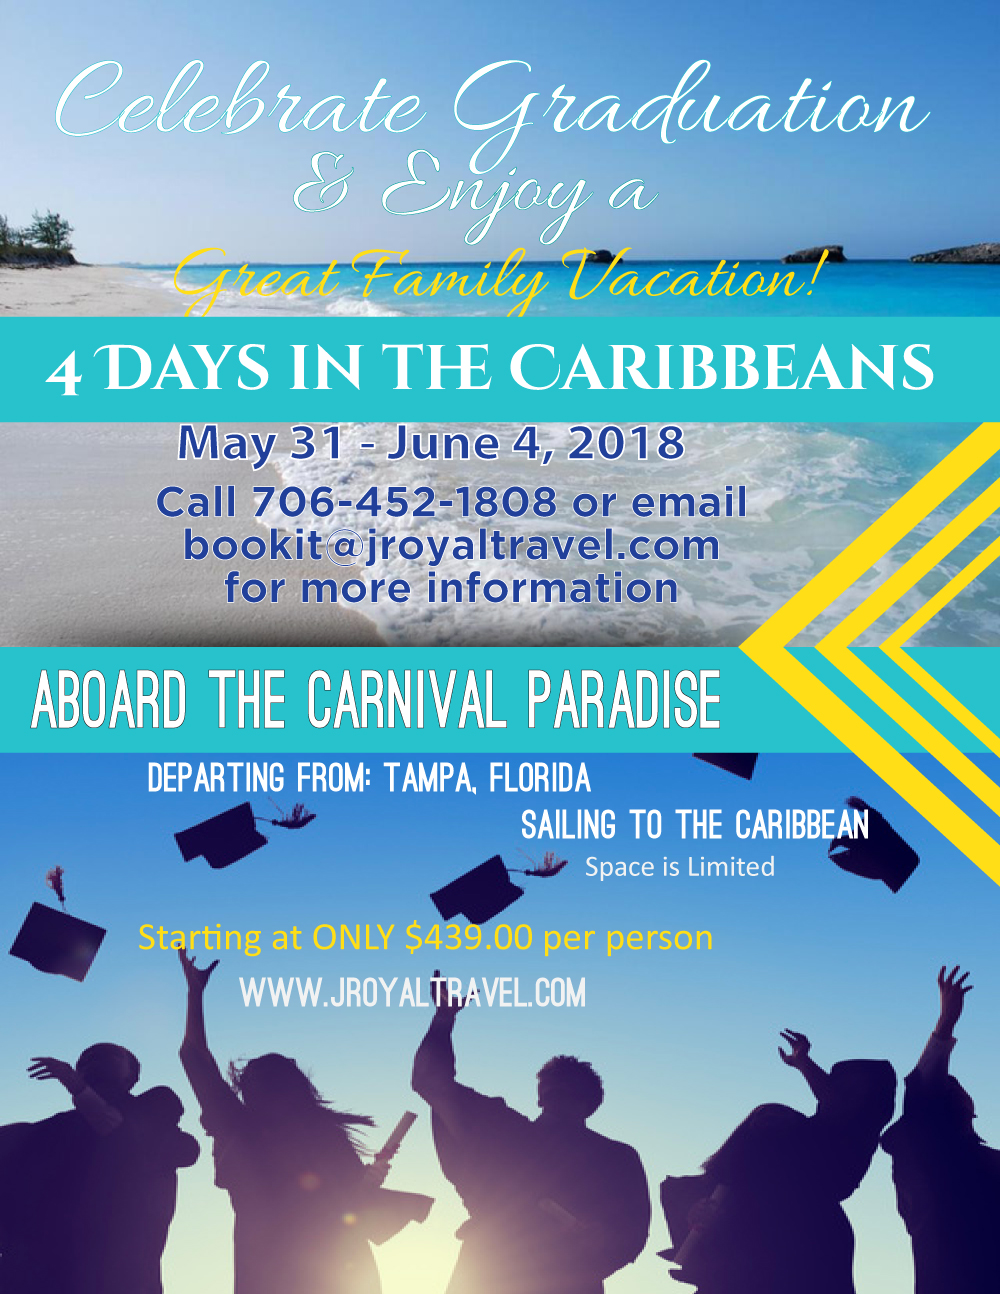 Interested in taking this cruise and not graduating?